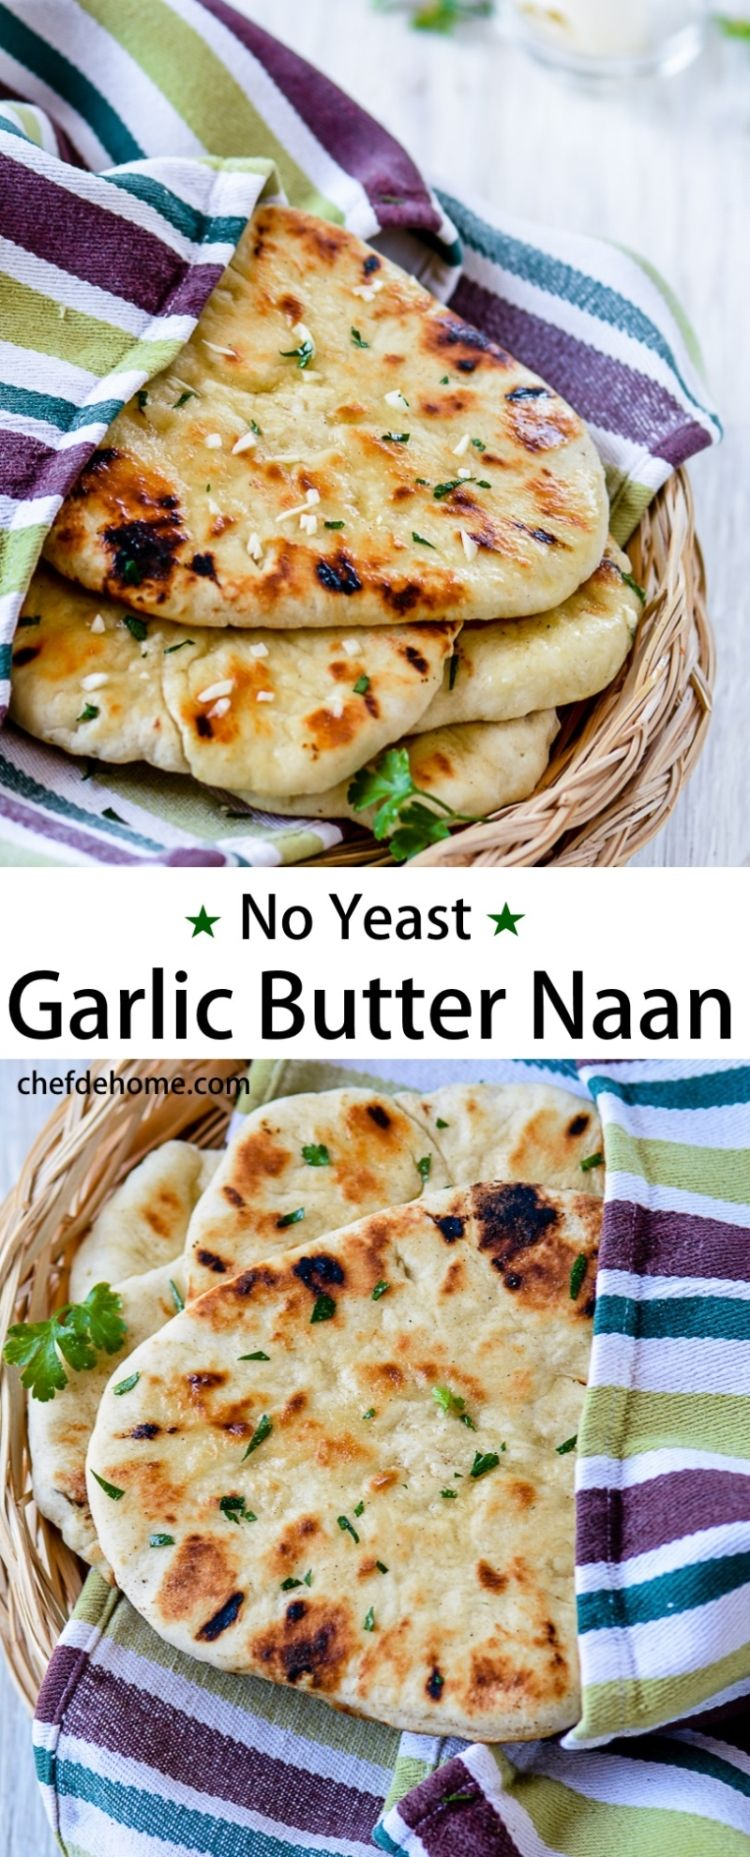 Homemade No Yeast Garlic Butter Naan Recipe With Images